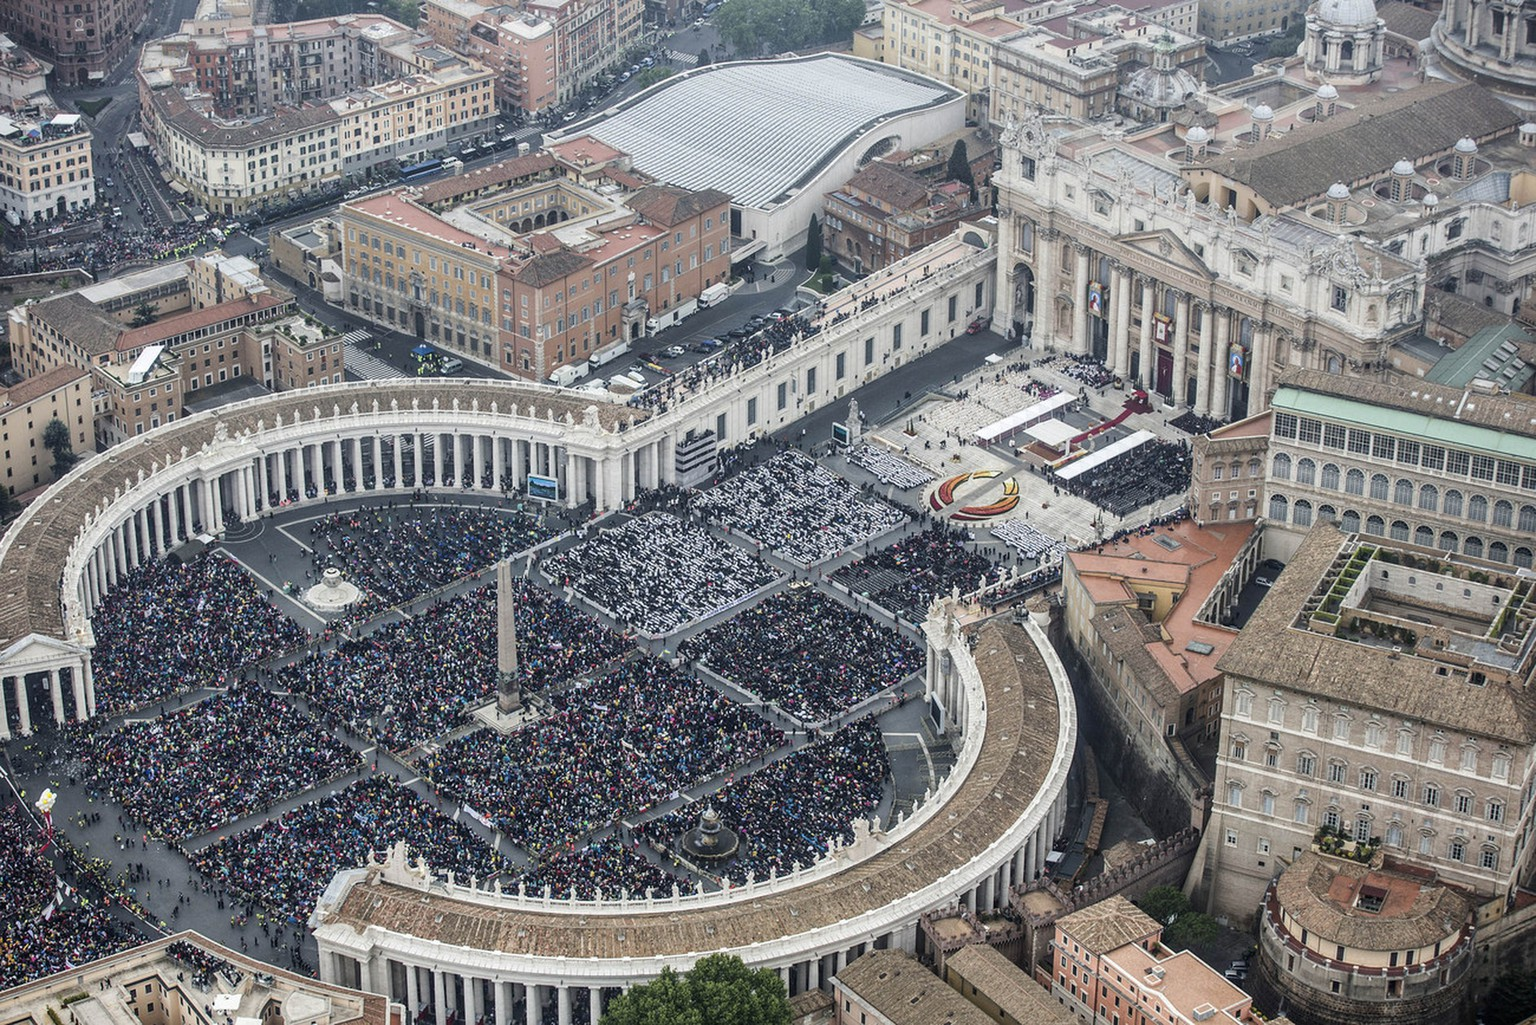 In this photo taken from an helicopter and released by the Italian Police, a view of  St. Peter's Square at the Vatican, packed with faithful Sunday, April 27, 2014. Tens of thousands of people have filled St. Peter's Square for a historic day of four popes, with Popes Francis and Benedict XVI honoring John XXIII and John Paul II by declaring them saints in the first ever canonization of two pontiffs. (AP Photo/Massimo Sestini, Italian Police, ho)